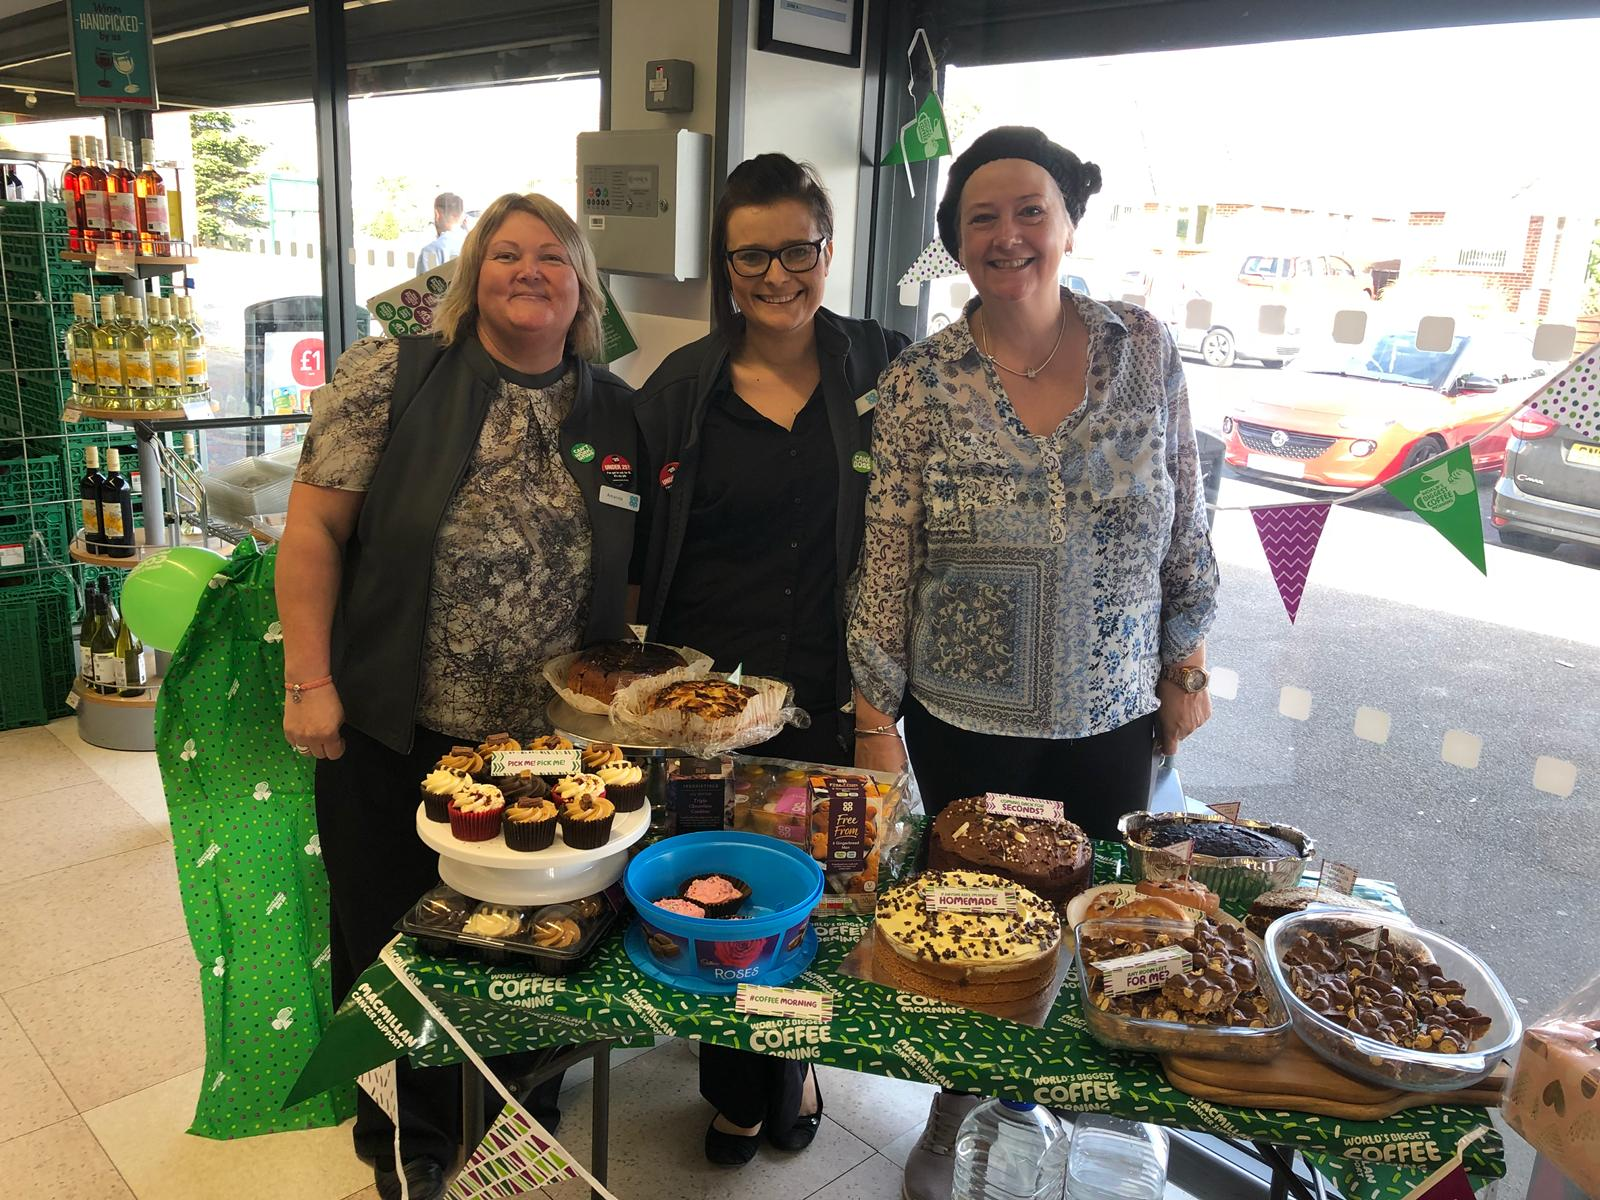 Bearstead Store Team raise £250 for Macmillan